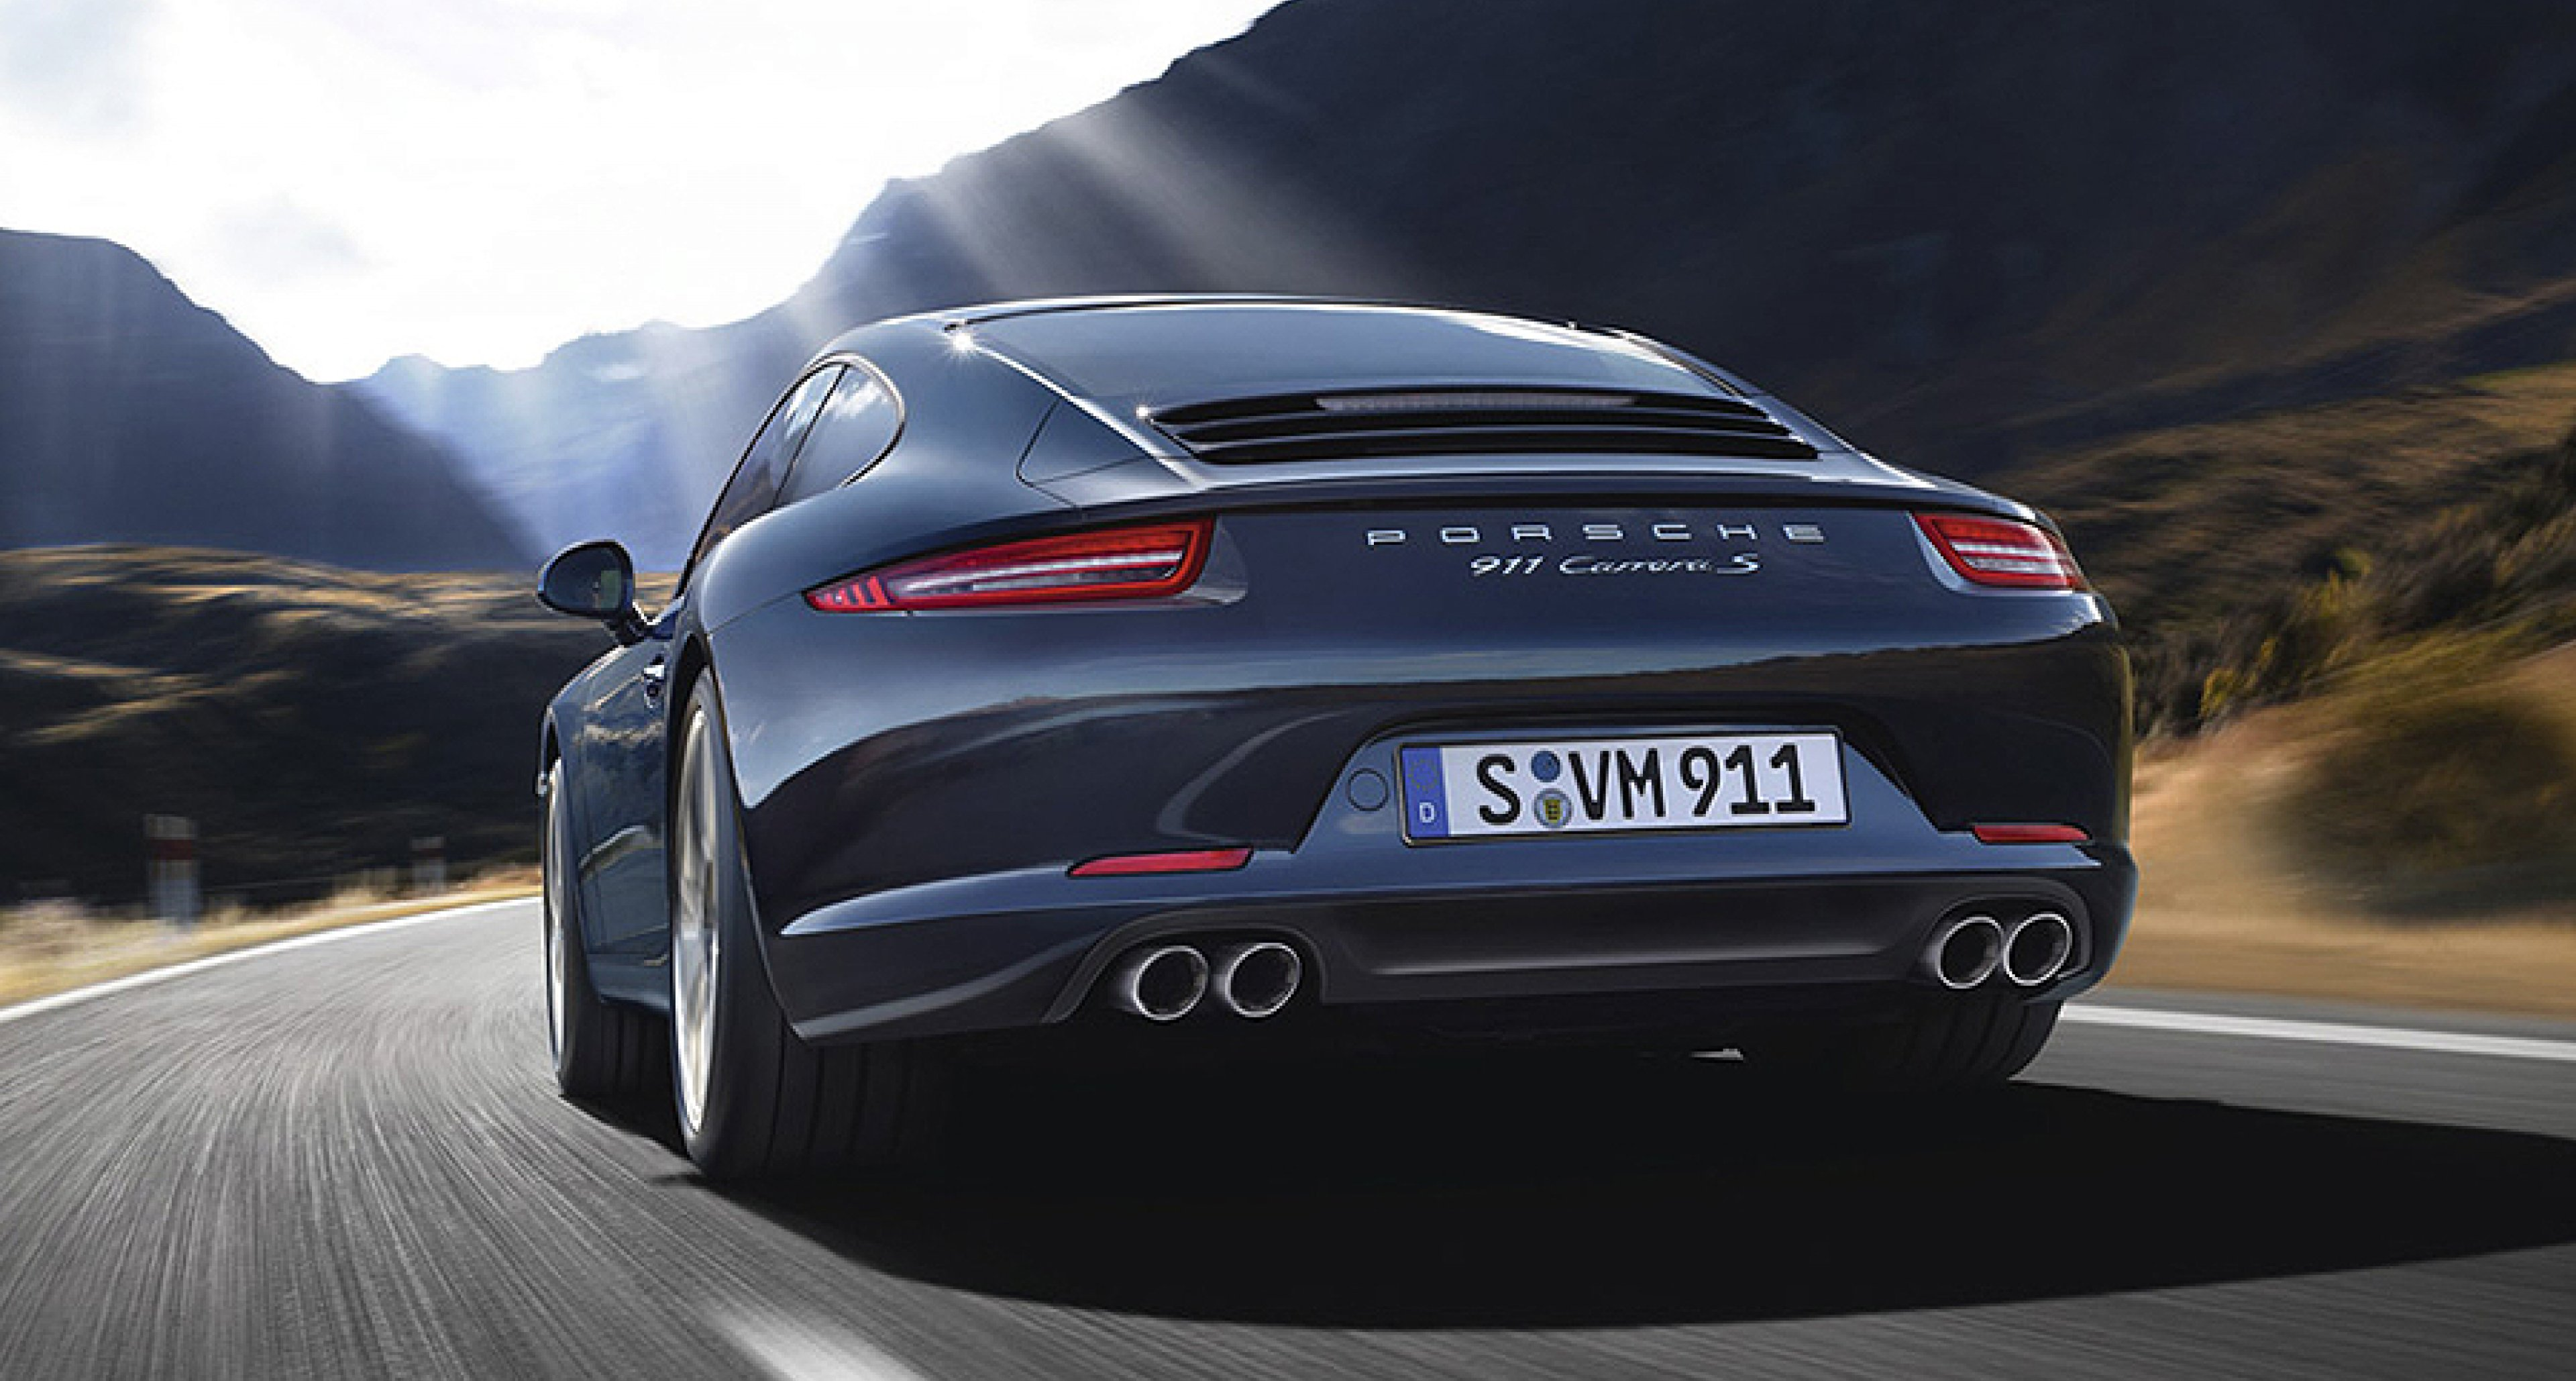 Acoustic design of the new Porsche 911: Sounds great